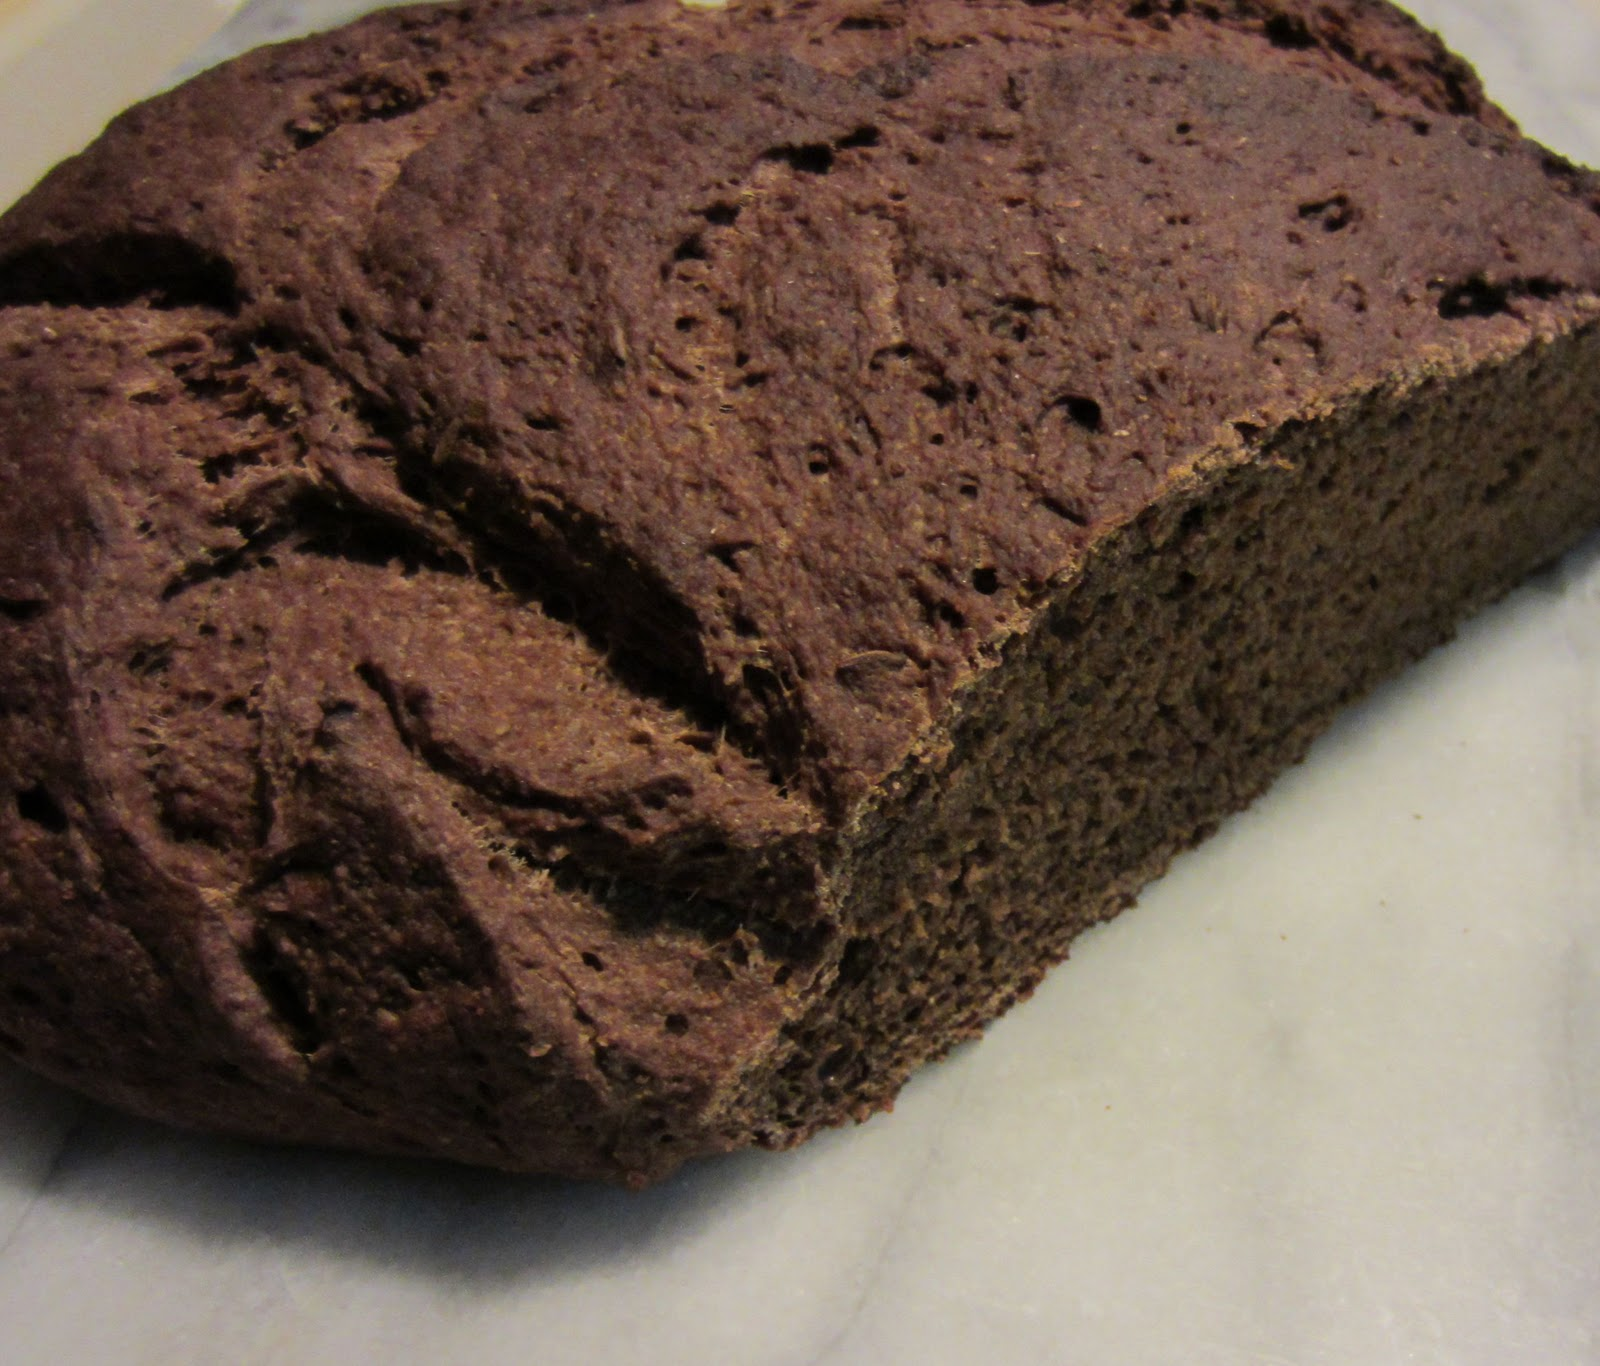 Minka Cooks: Macedonian Black Bread